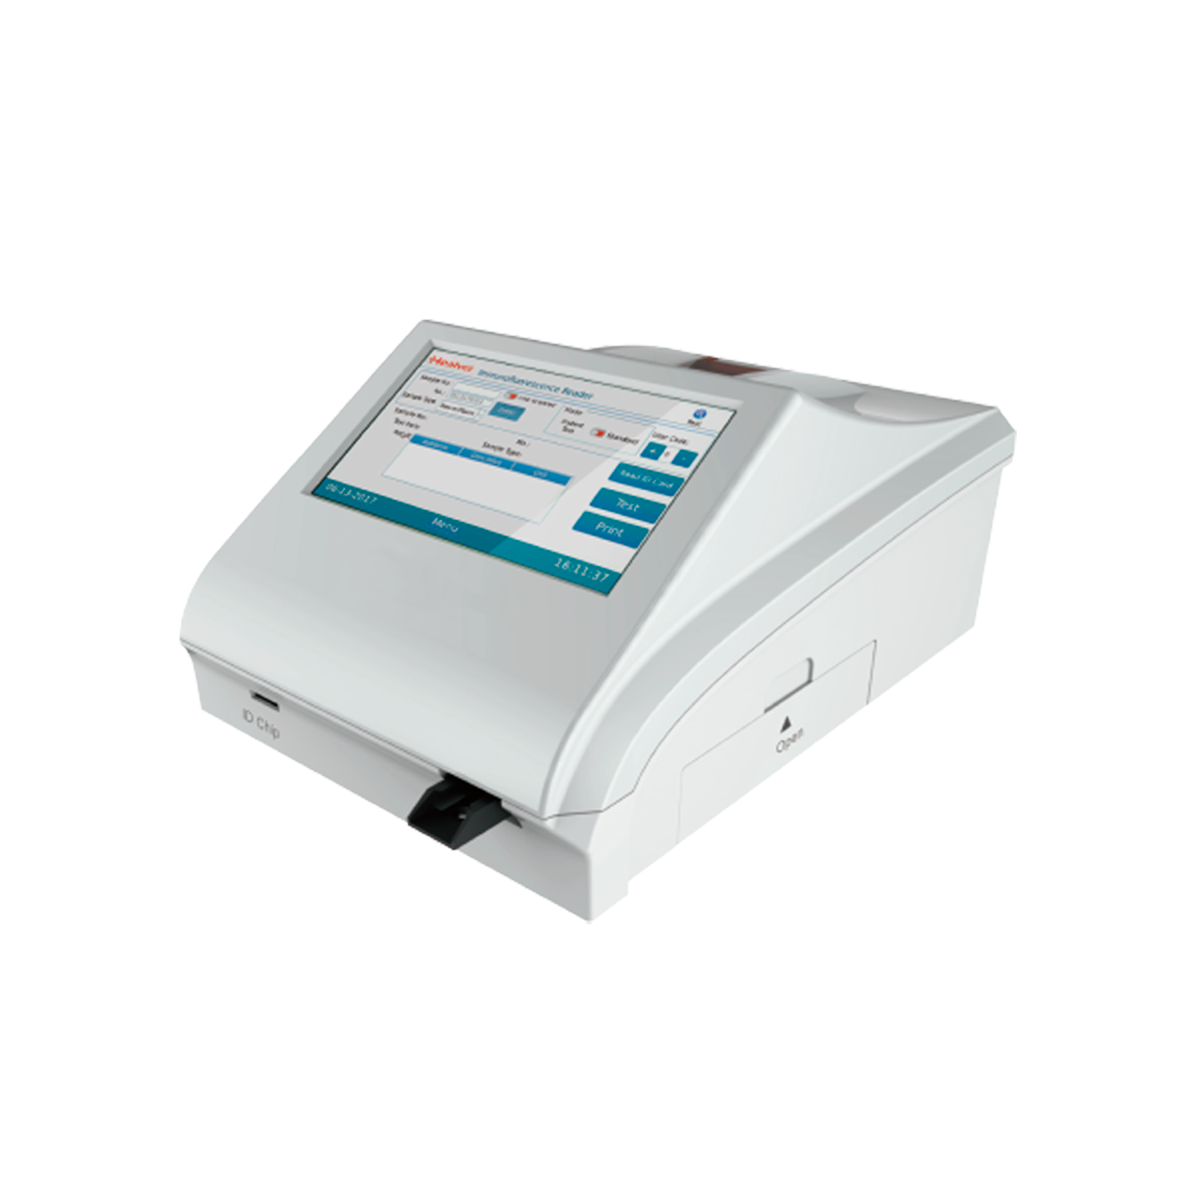 Veterinary biochemistry analyzers